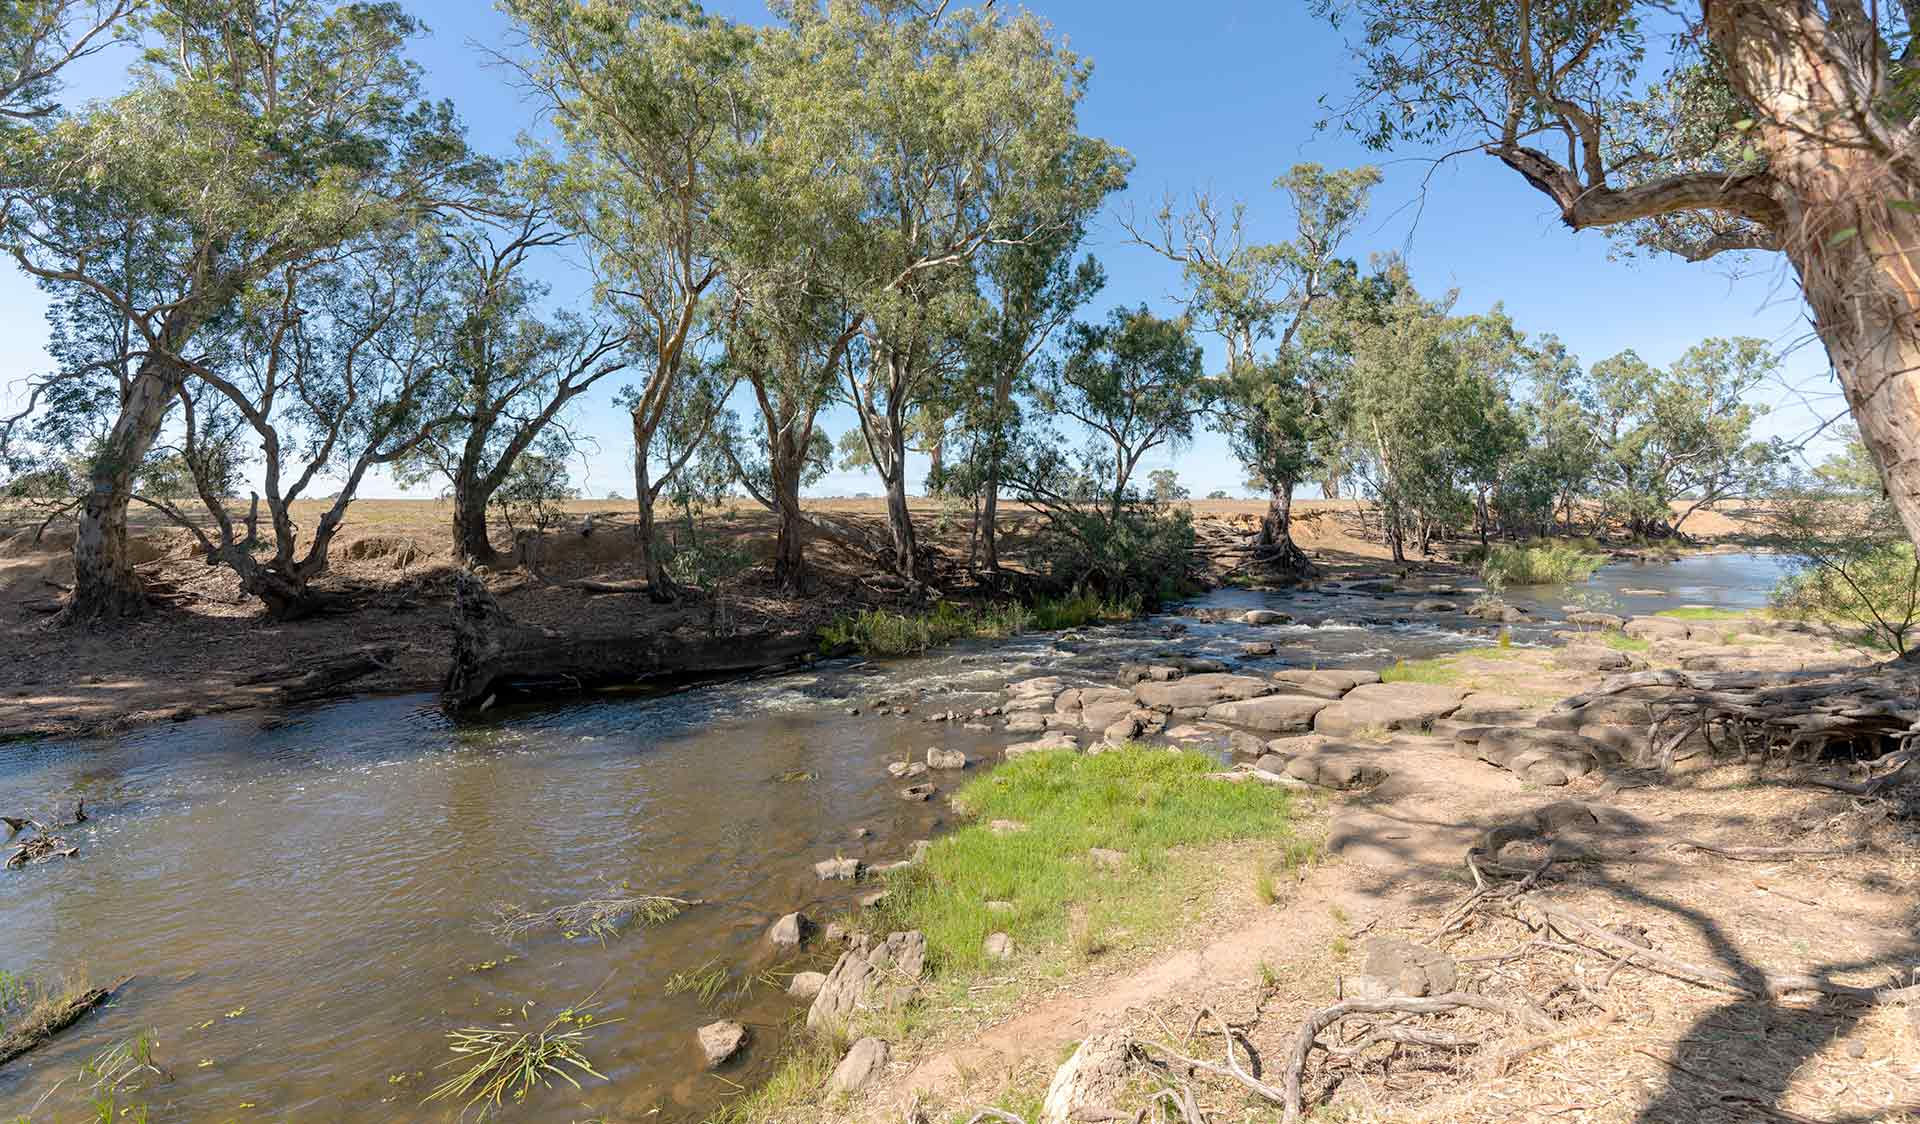 Campaspe River at Rocky Crossing in the Greater Bendigo National Park